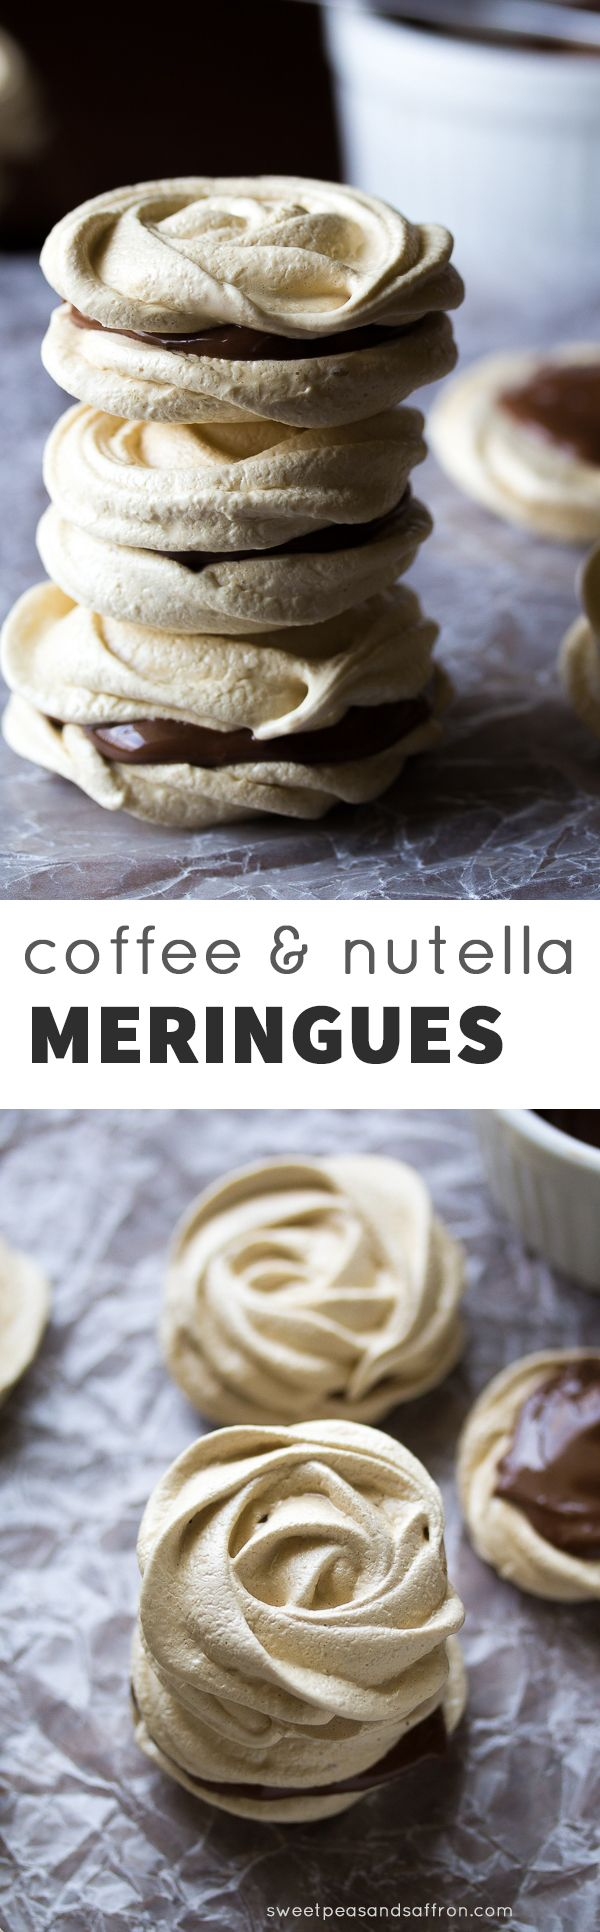 Coffee & Nutella Meringue Sandwiches @sweetpeasaffron                                                                                                                                                                                 More